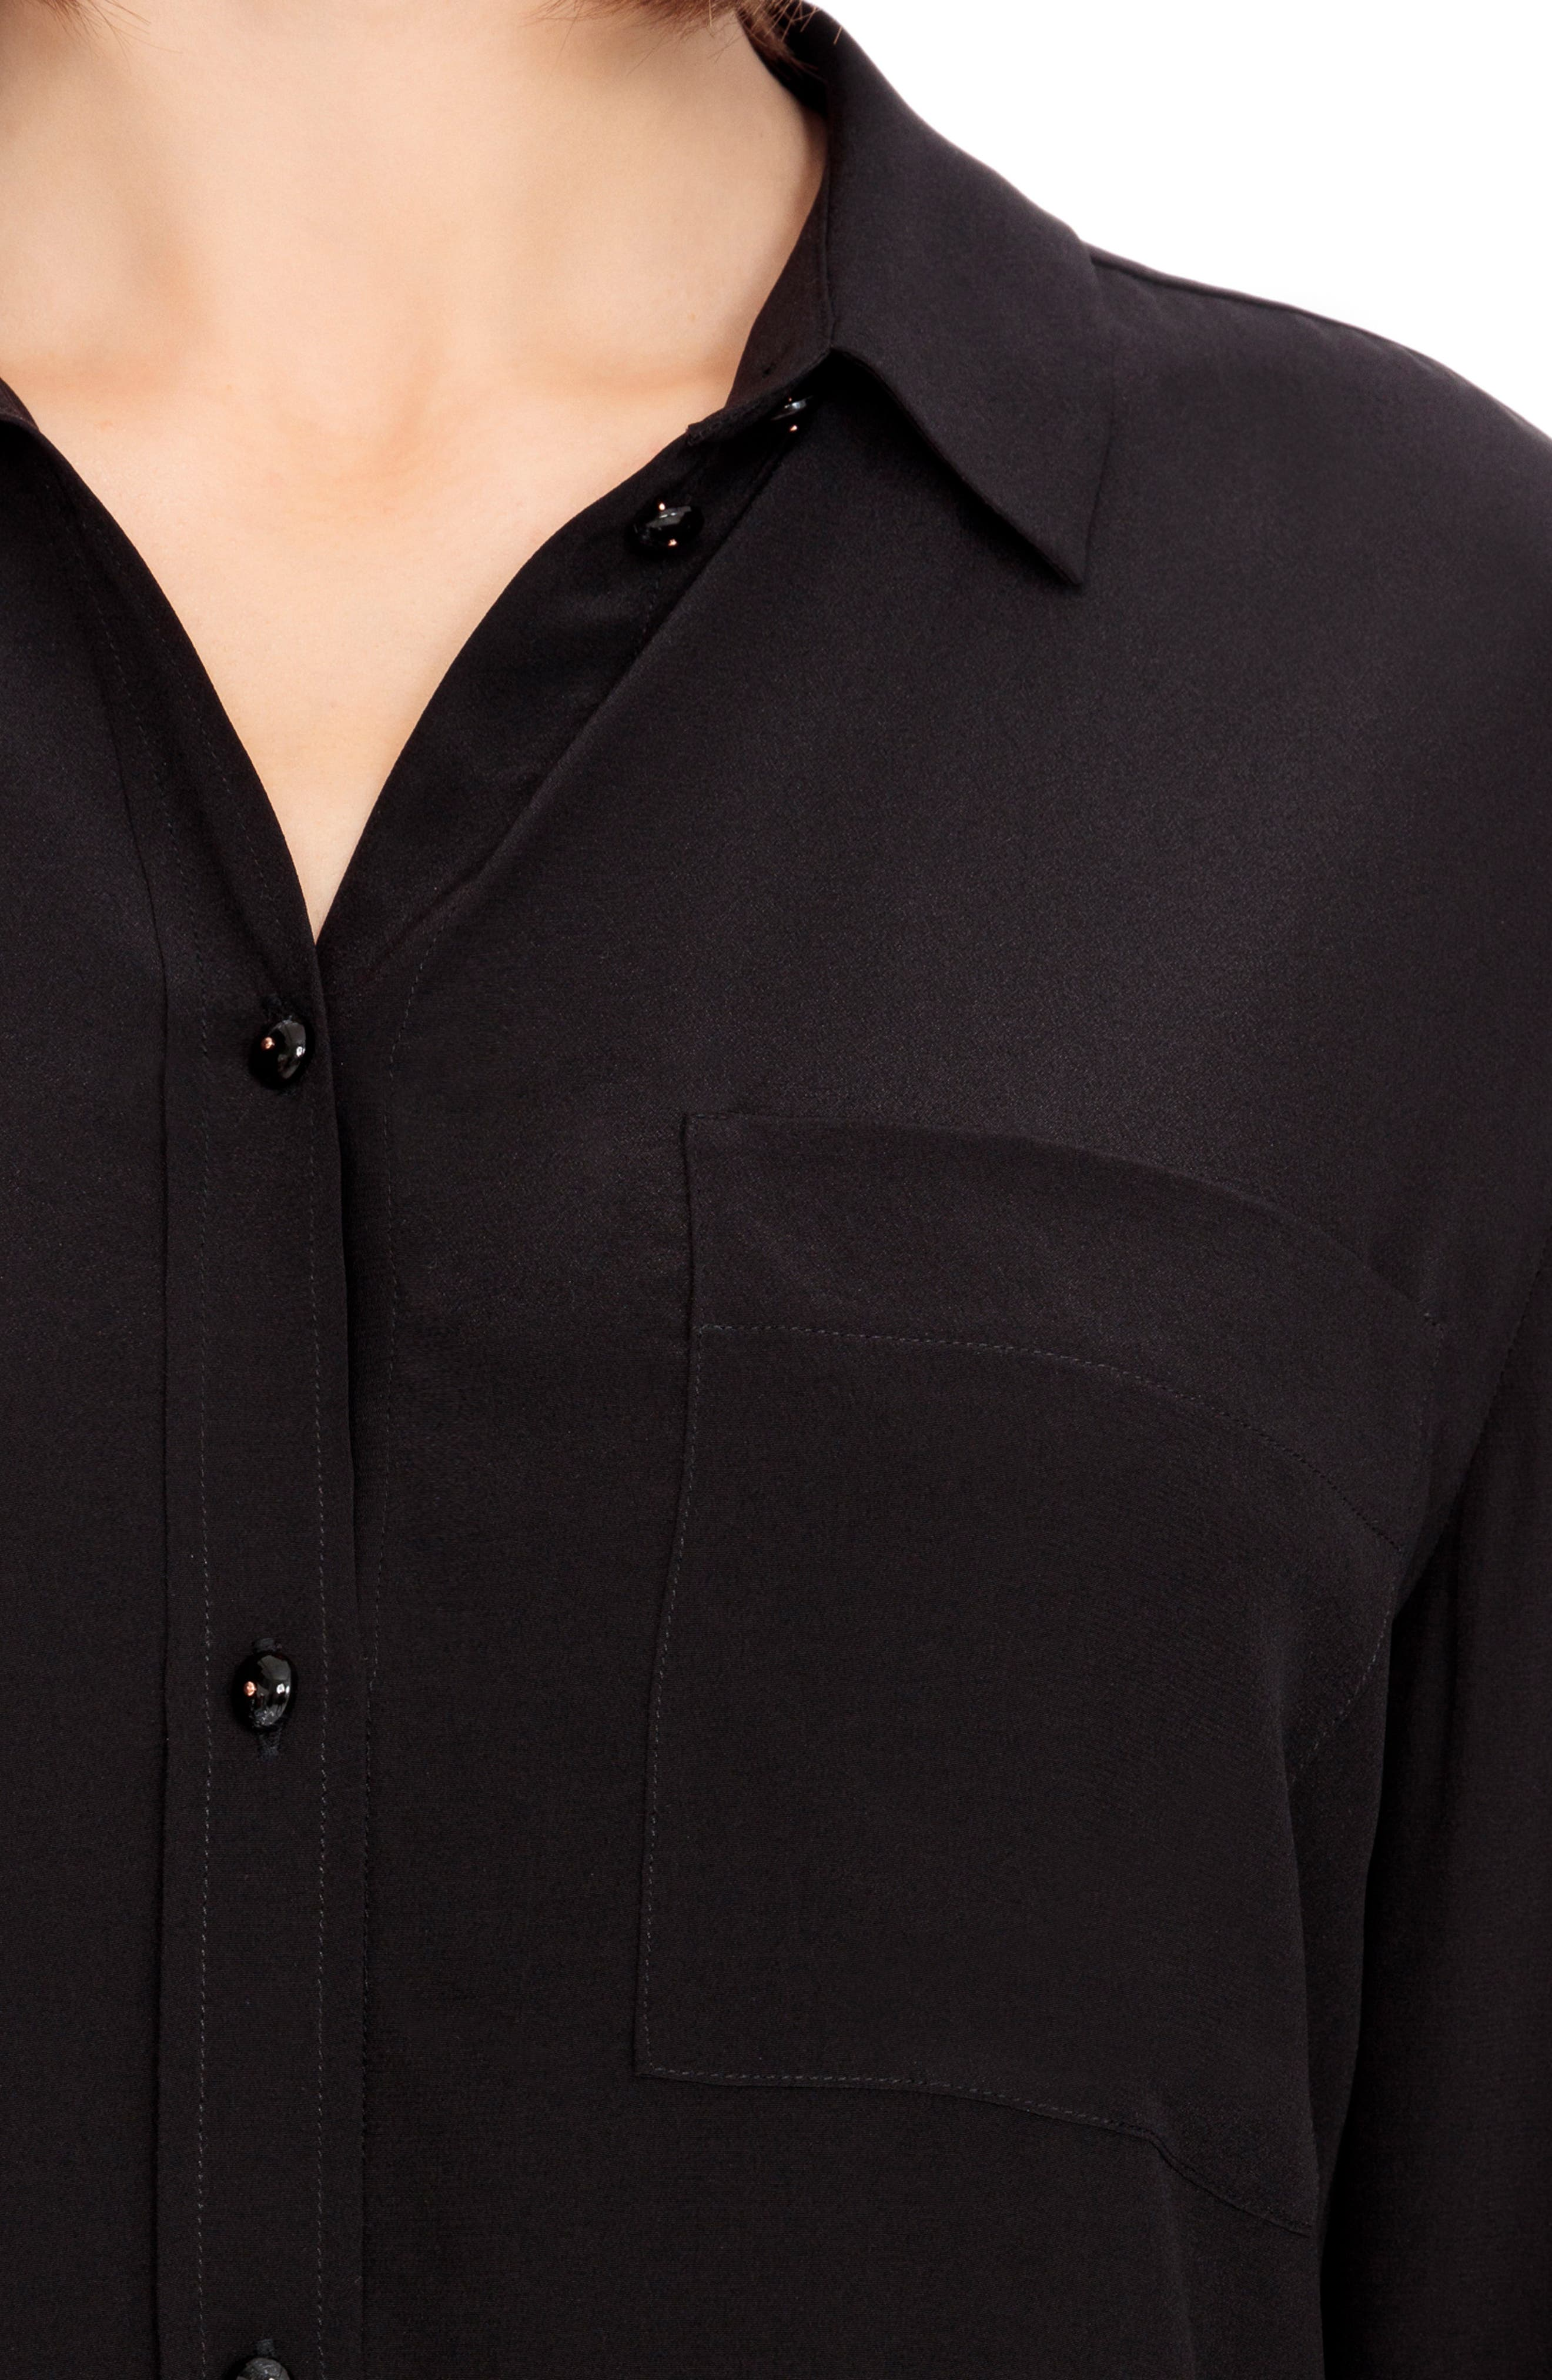 Boy Silk Shirt,                             Alternate thumbnail 4, color,                             001